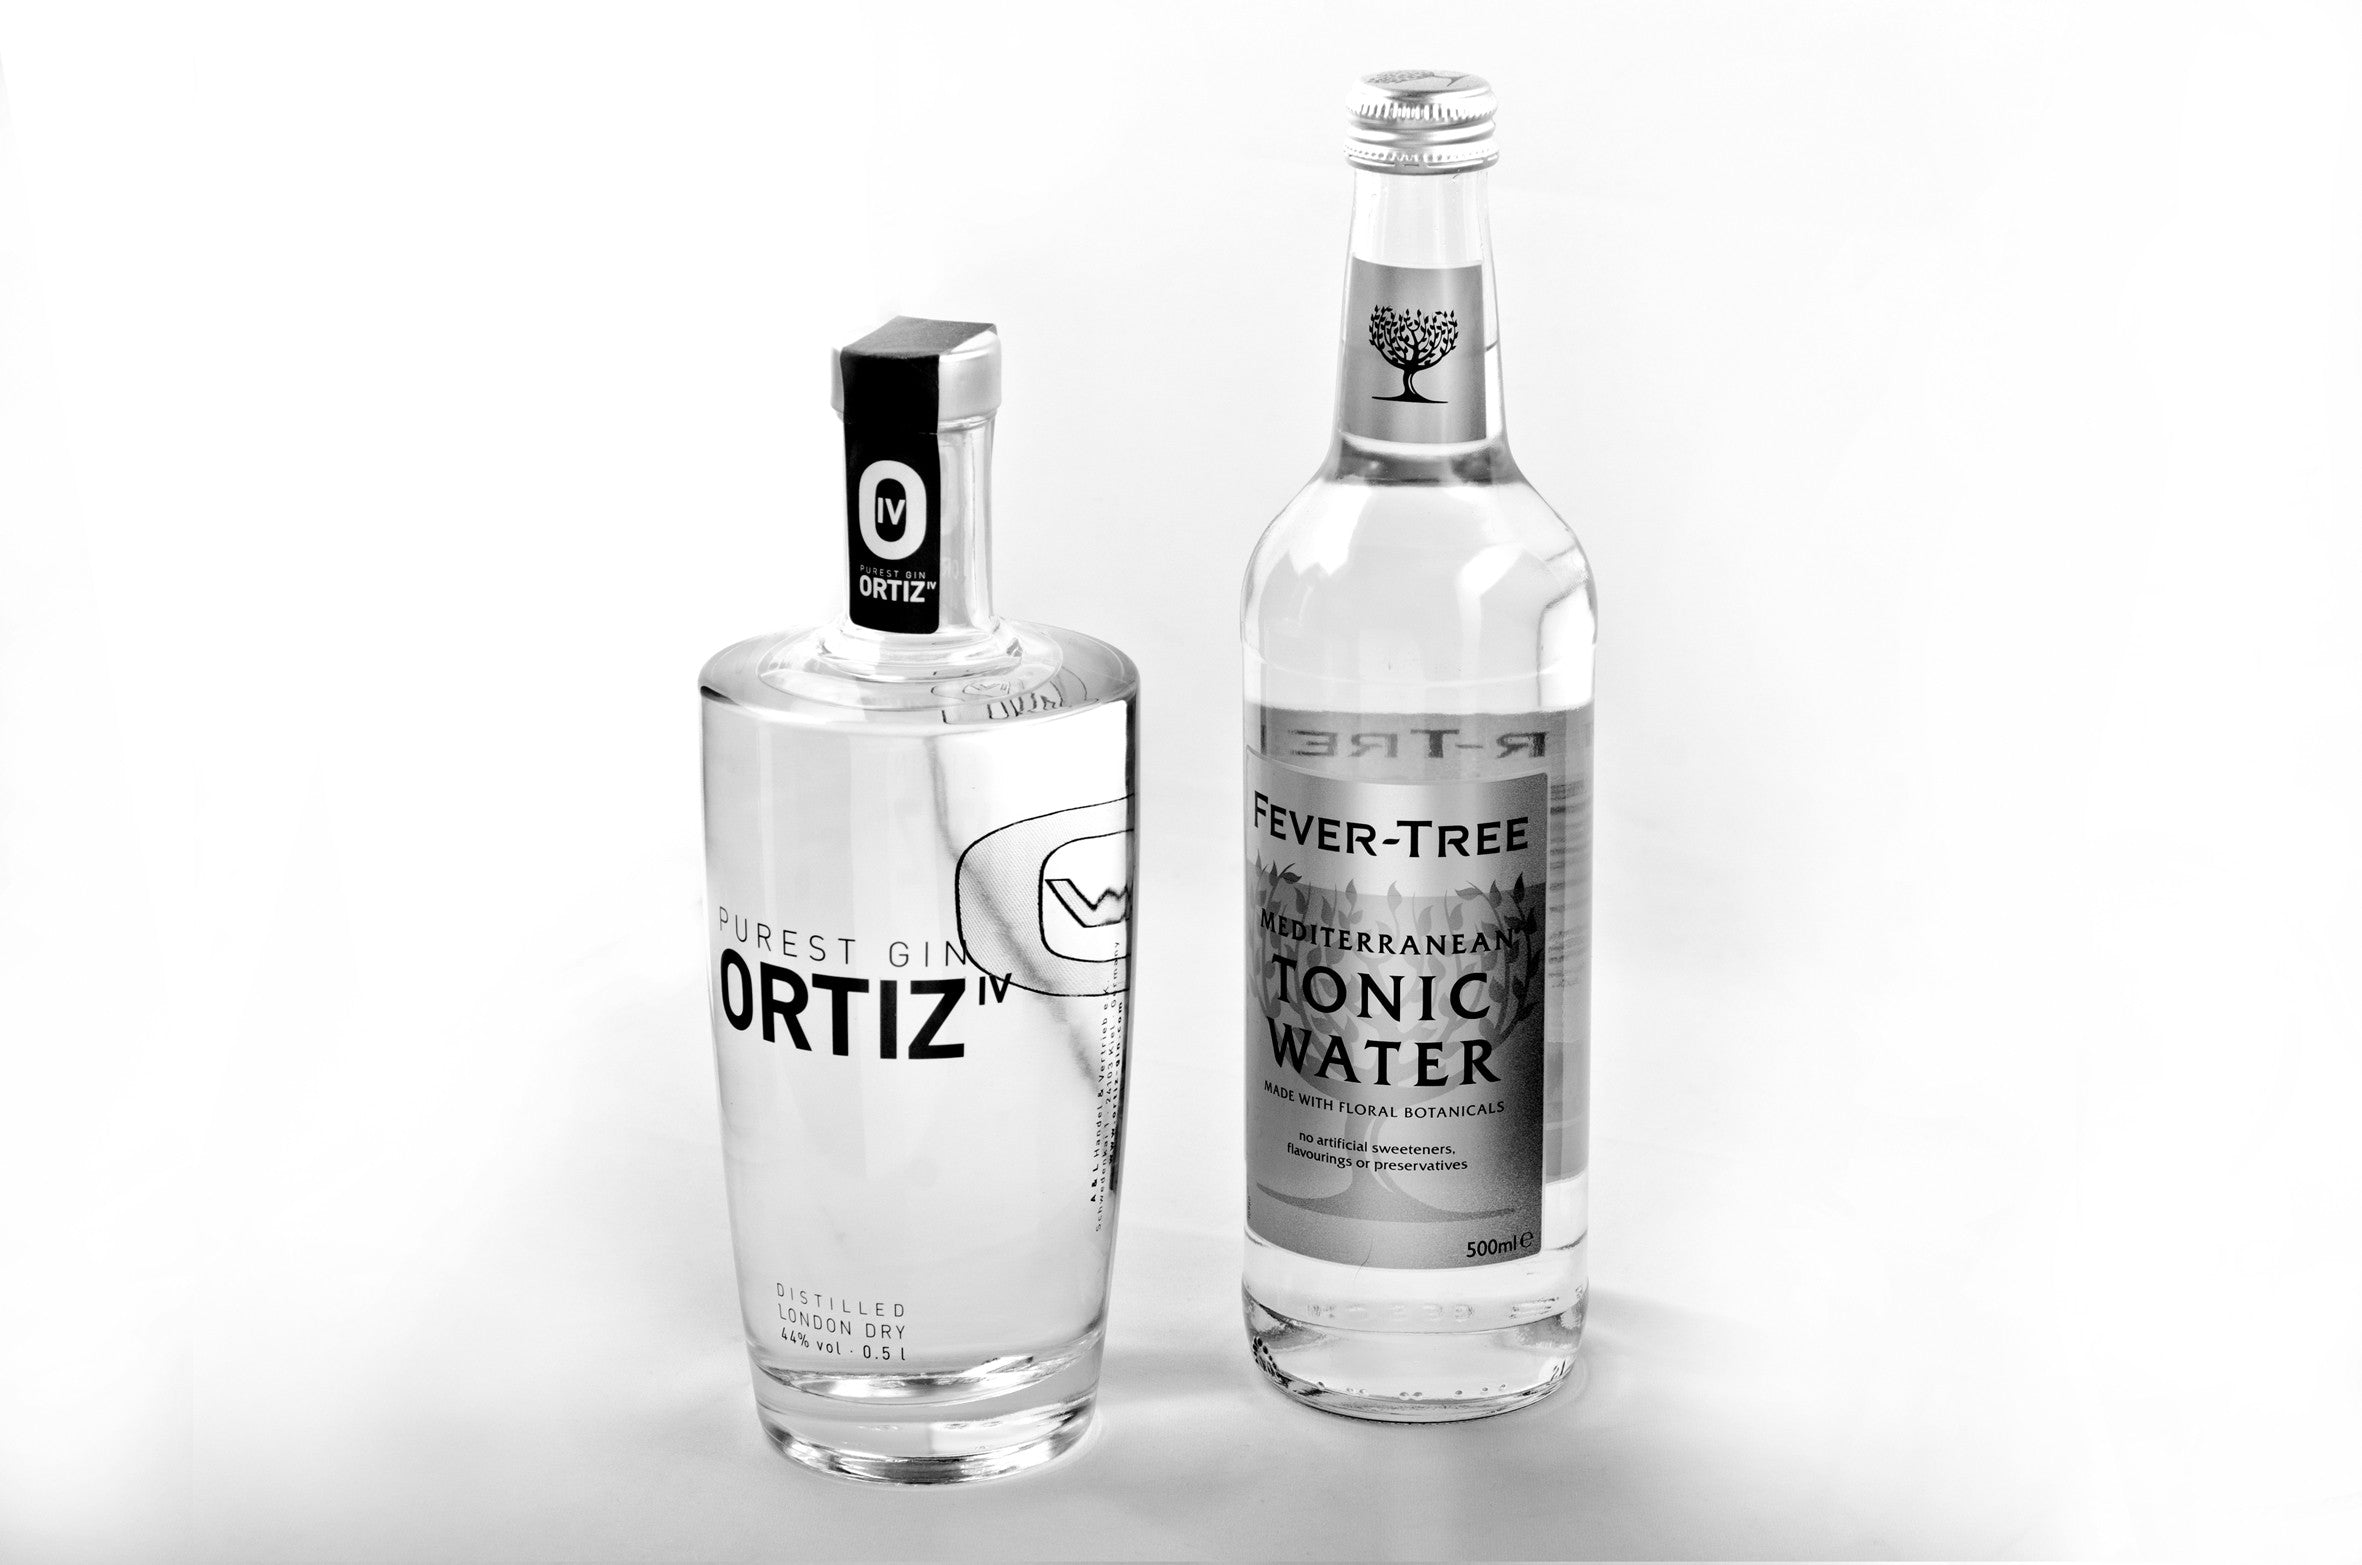 1 bottle ORTIZ IV PUREST GIN 0.5l incl. 1 bottle Fever Tree Tonic 0.5l